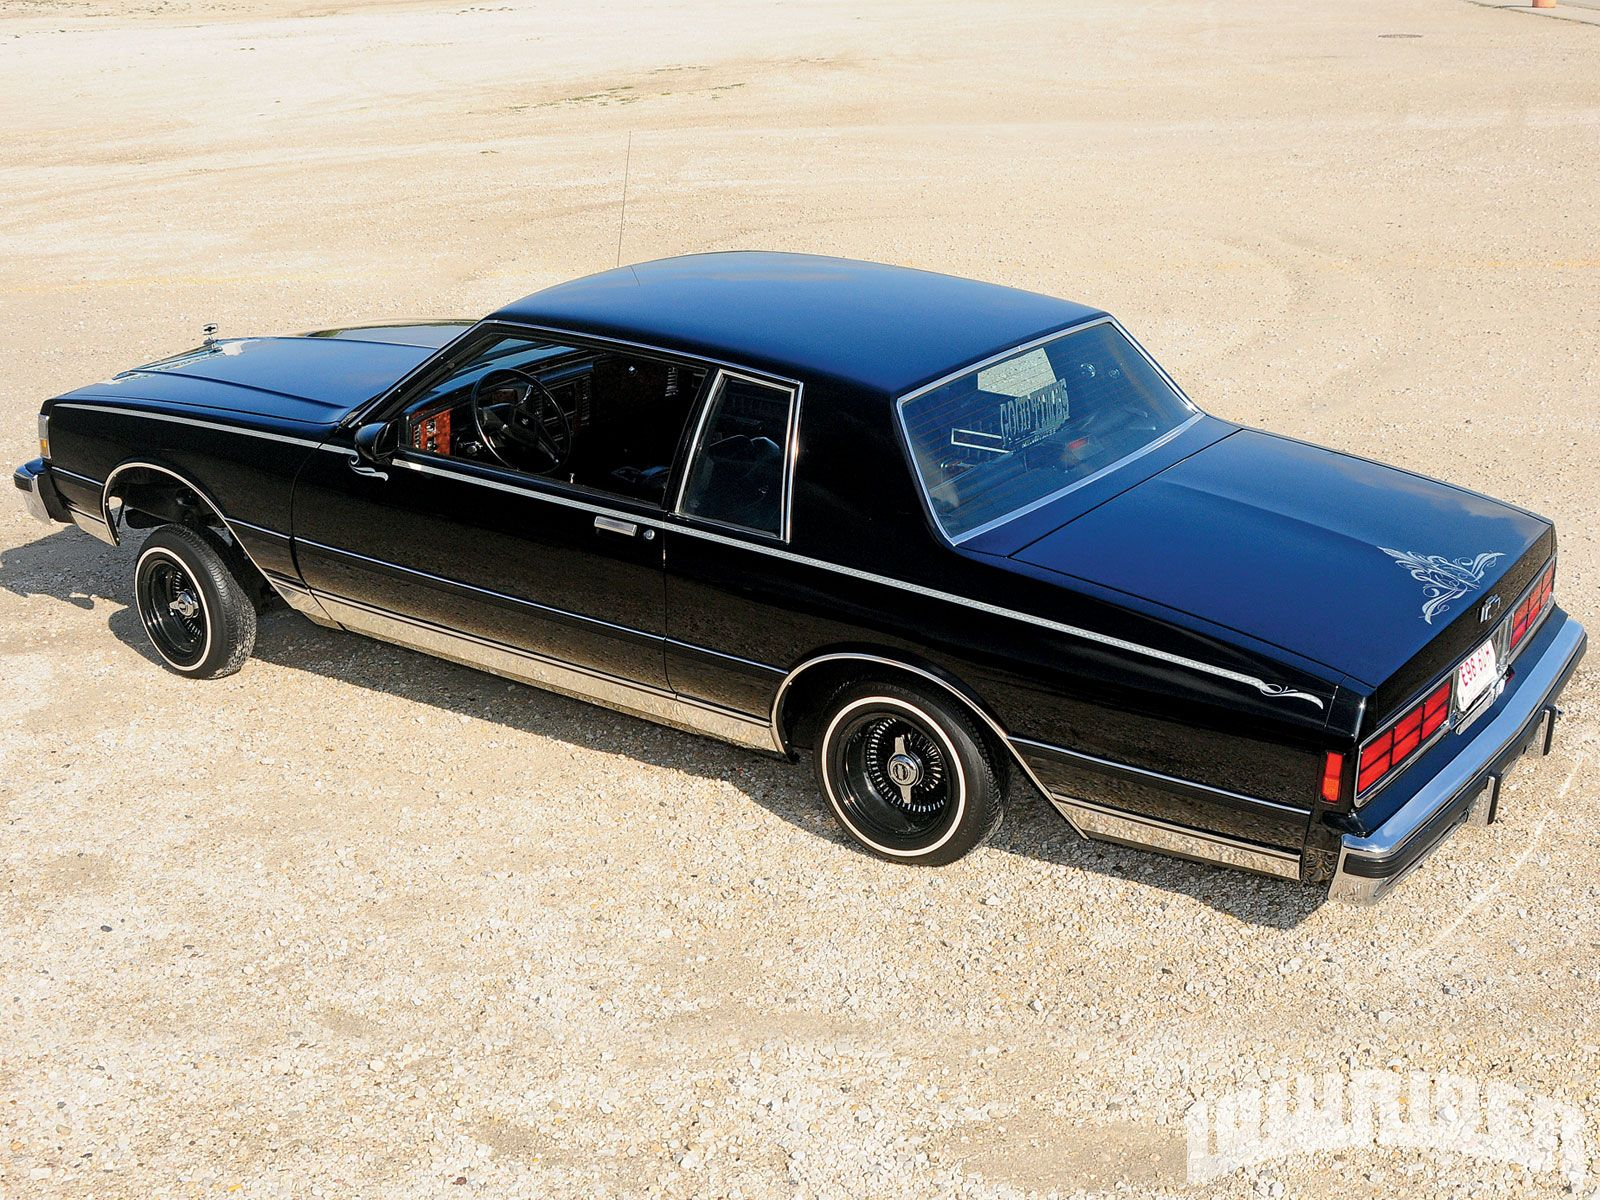 This 93 cadillac fleetwood caught my eye can you feel me just ballin in this car cars and bikes pinterest cadillac fleetwood cadillac and cars